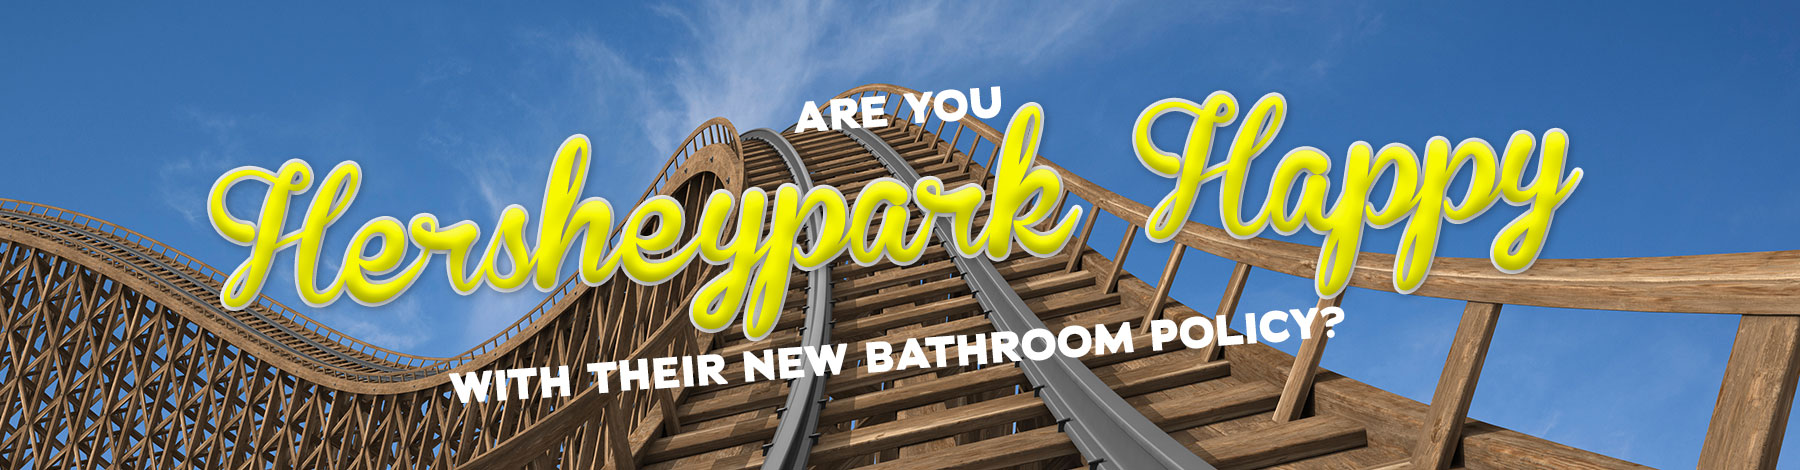 Are you Hersheypark Happy with their new bathroom policy?